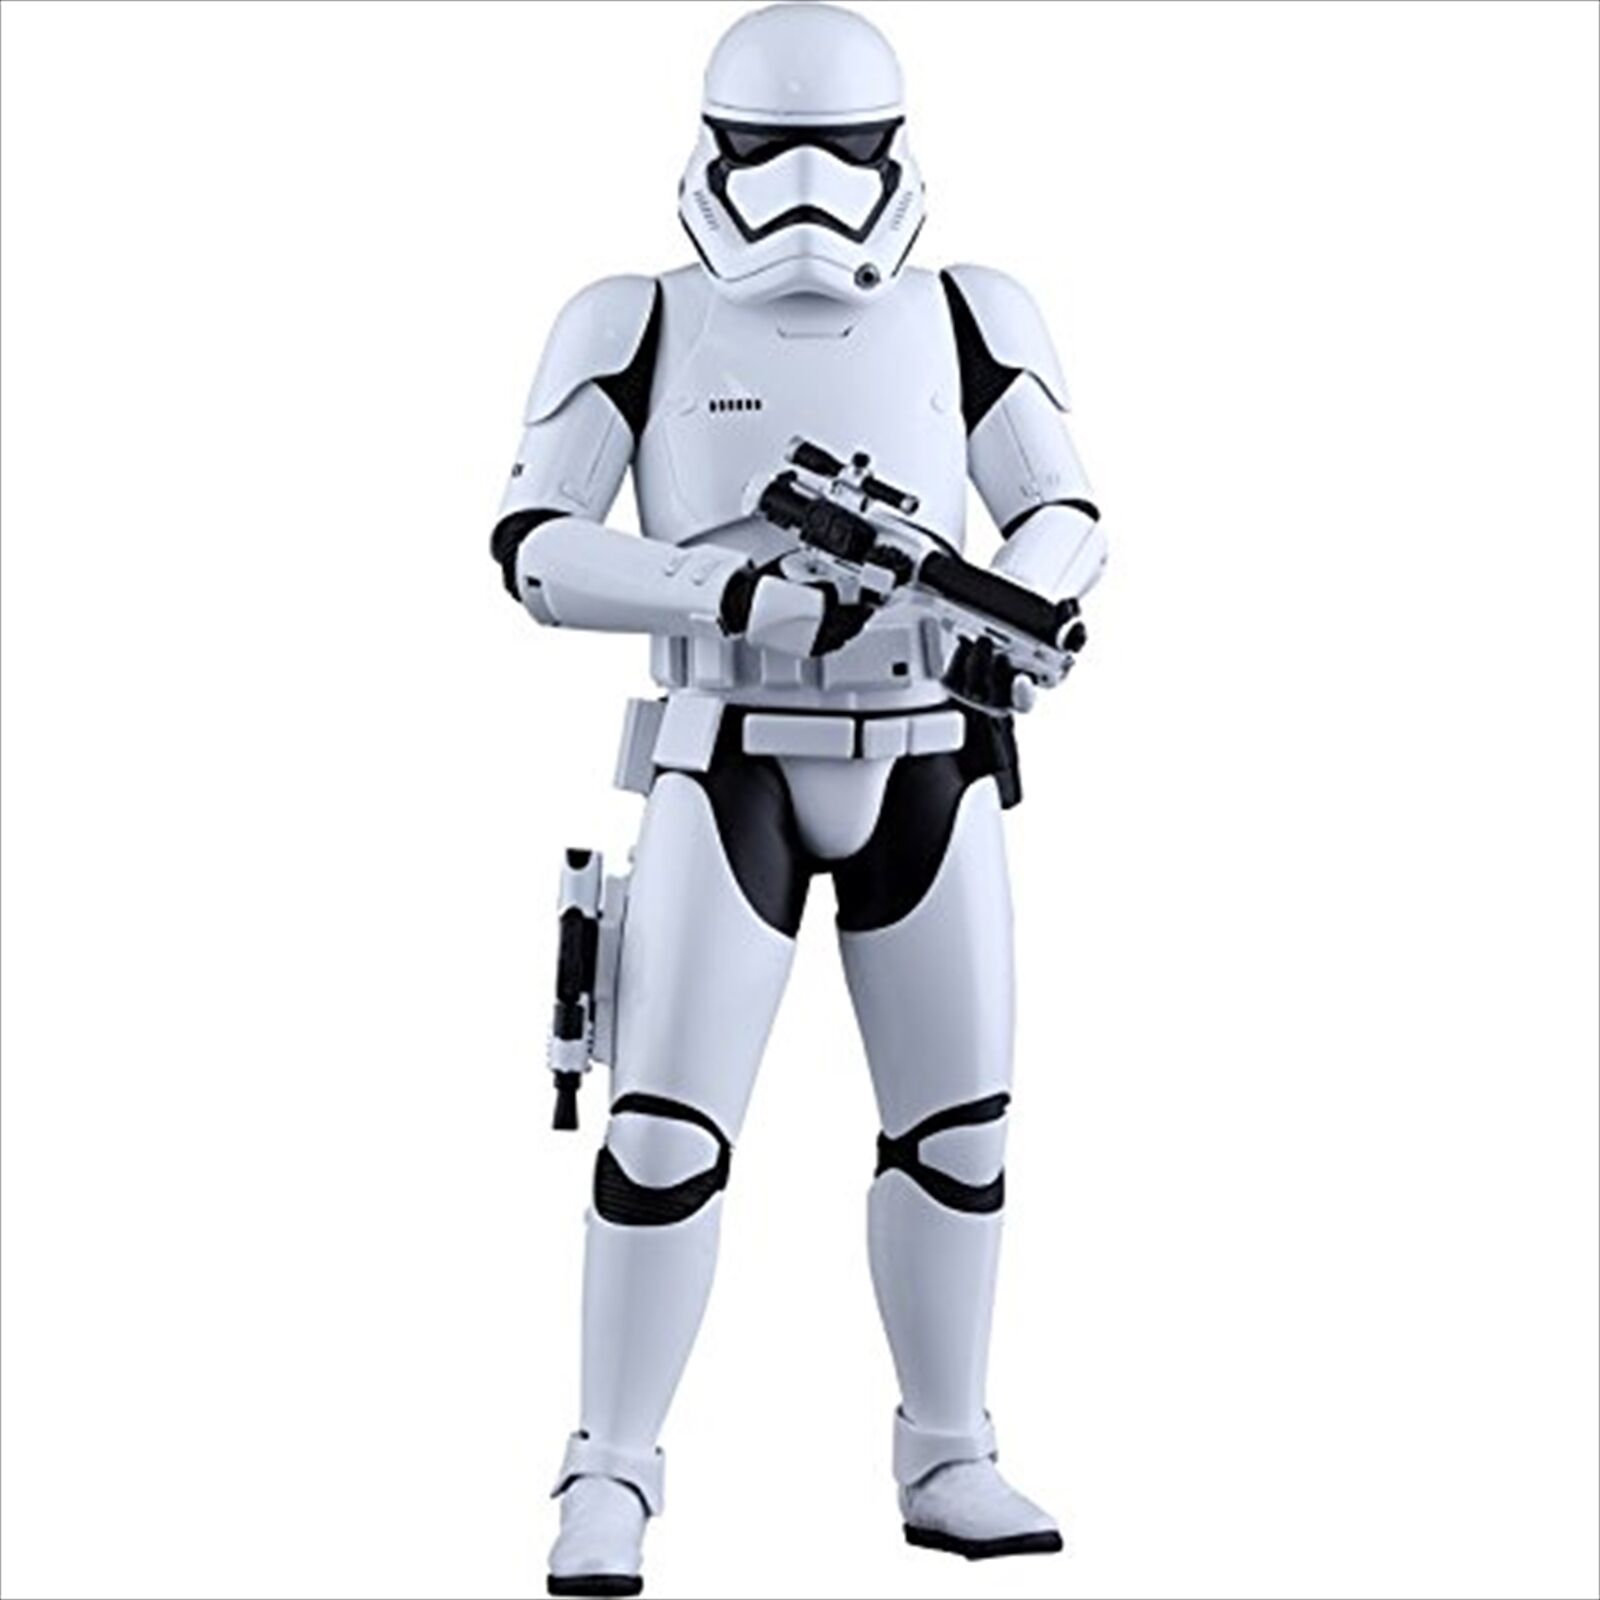 Hot Toys Movie Masterpiece Star Wars The Force Awakens First Order Stormtrooper